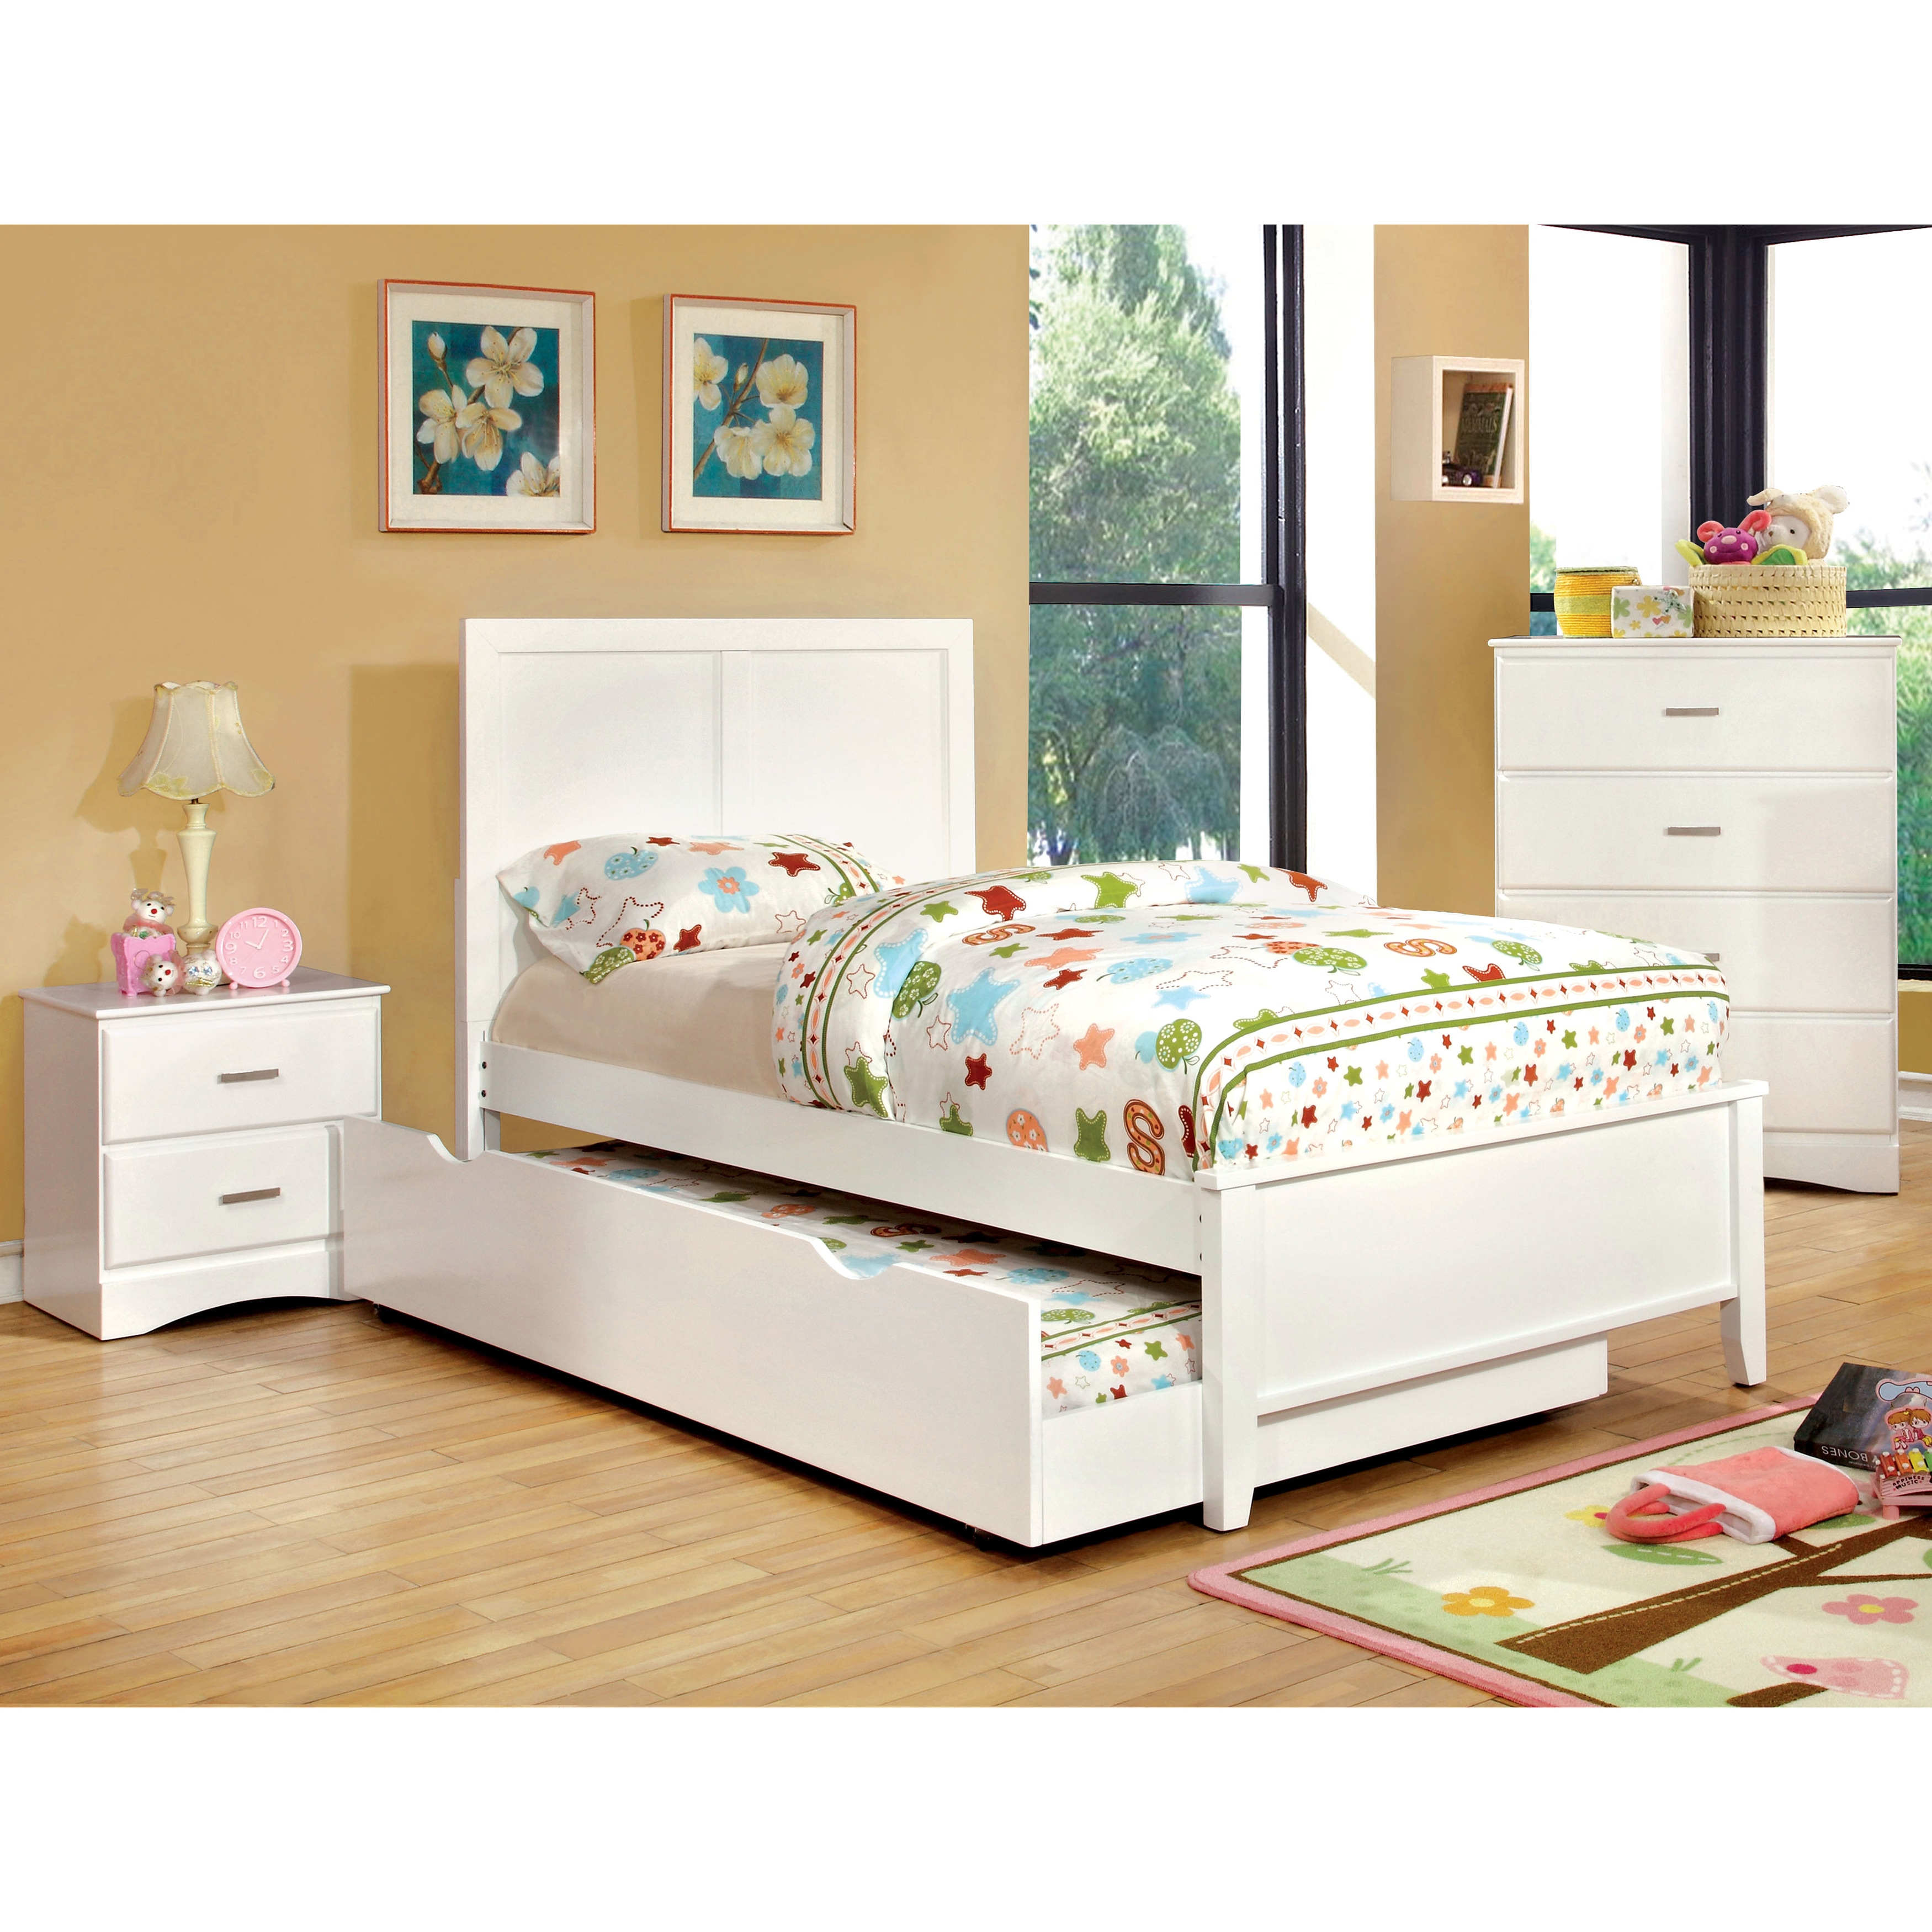 Furniture of America Colorpop Modern Youth 4-drawer Chest...